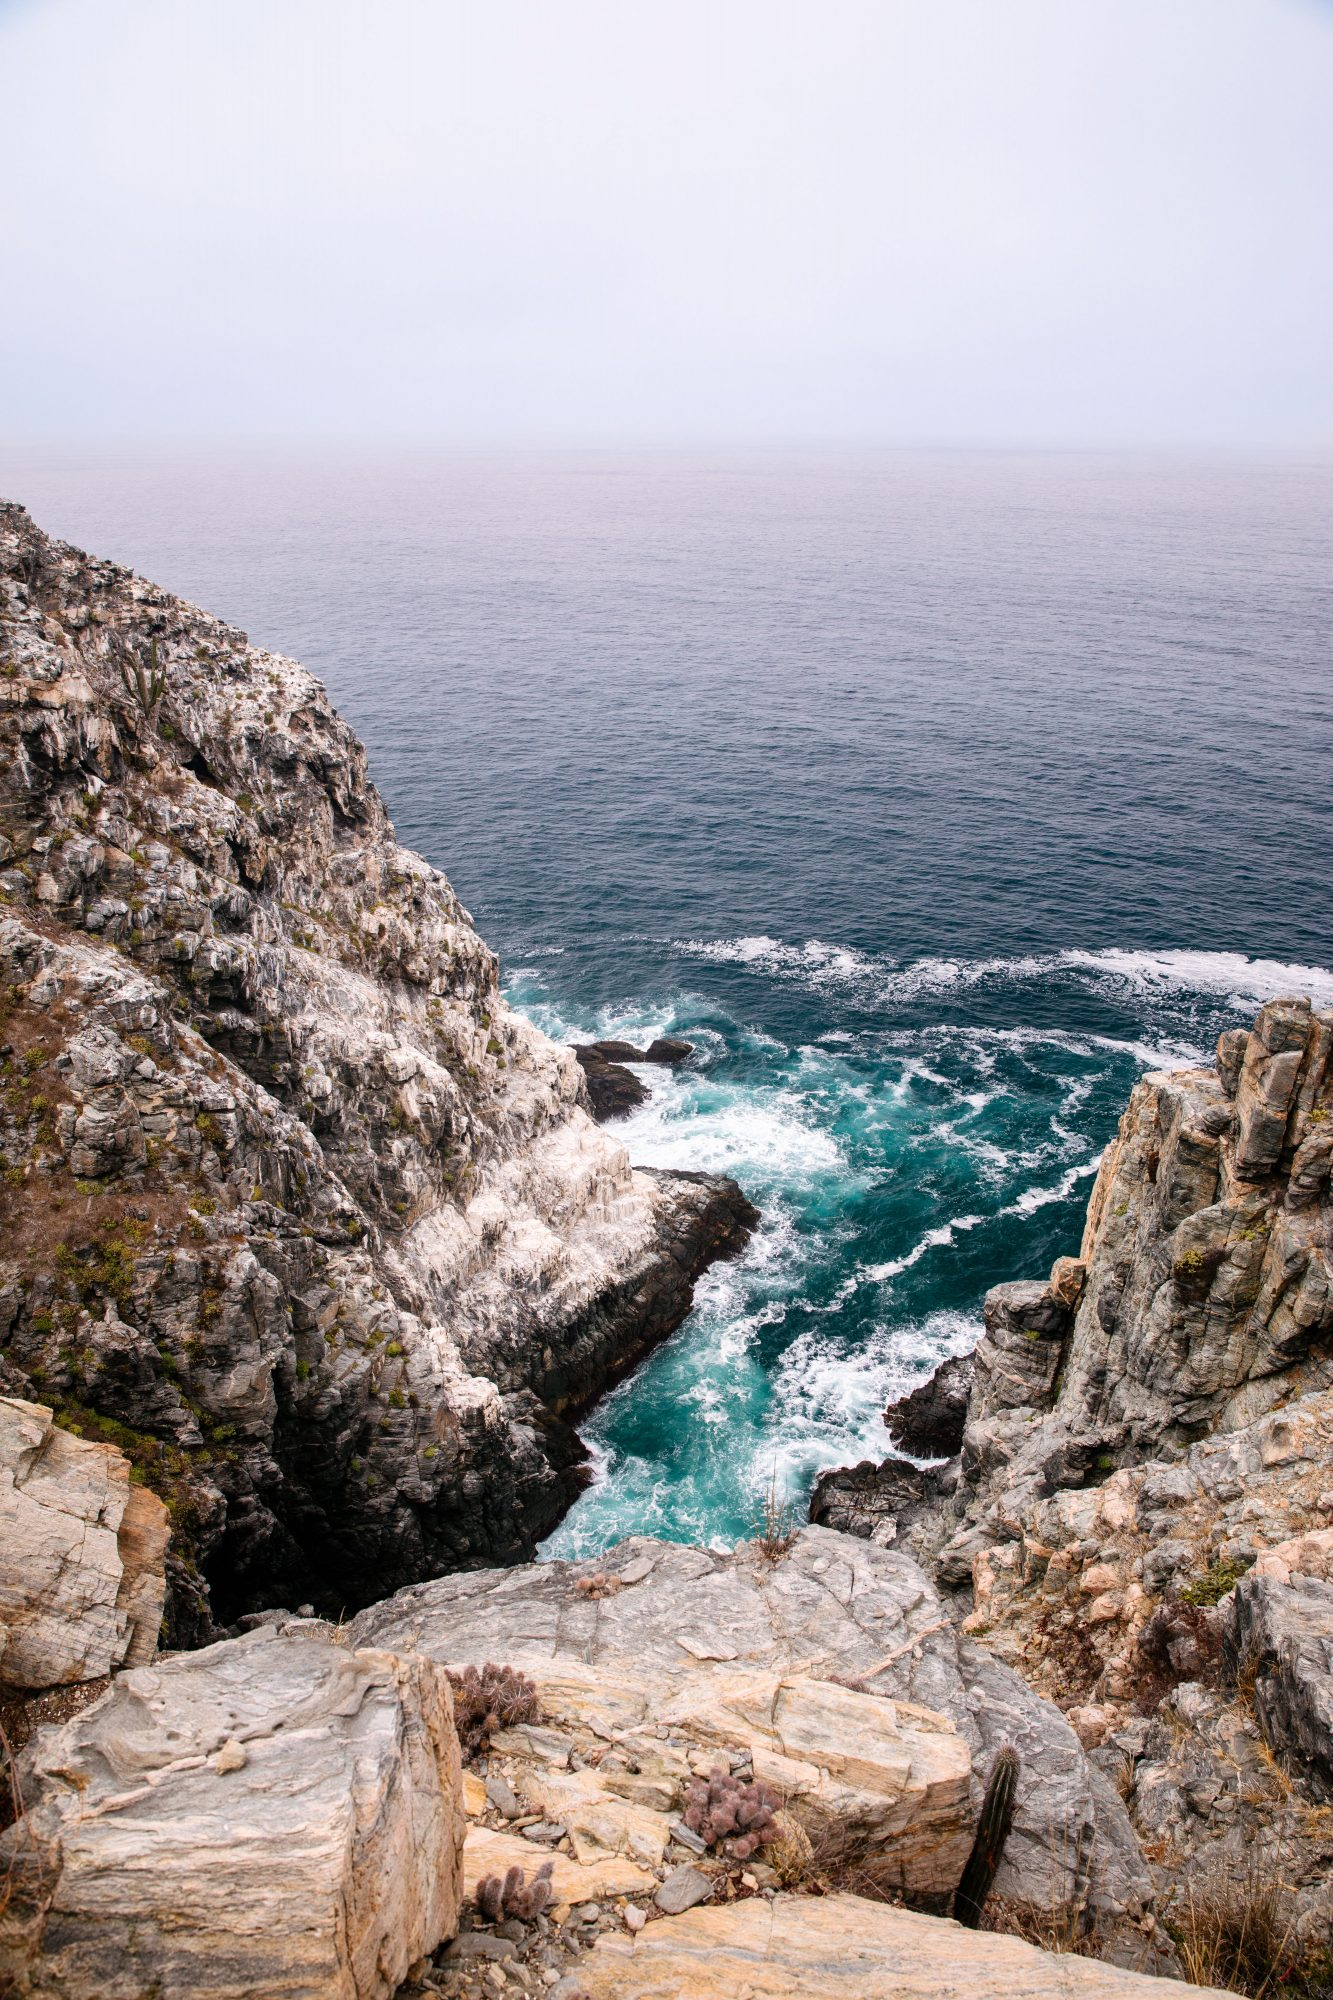 The Pacific Ocean as glimpsed from a blufftop hike in Todos Santos